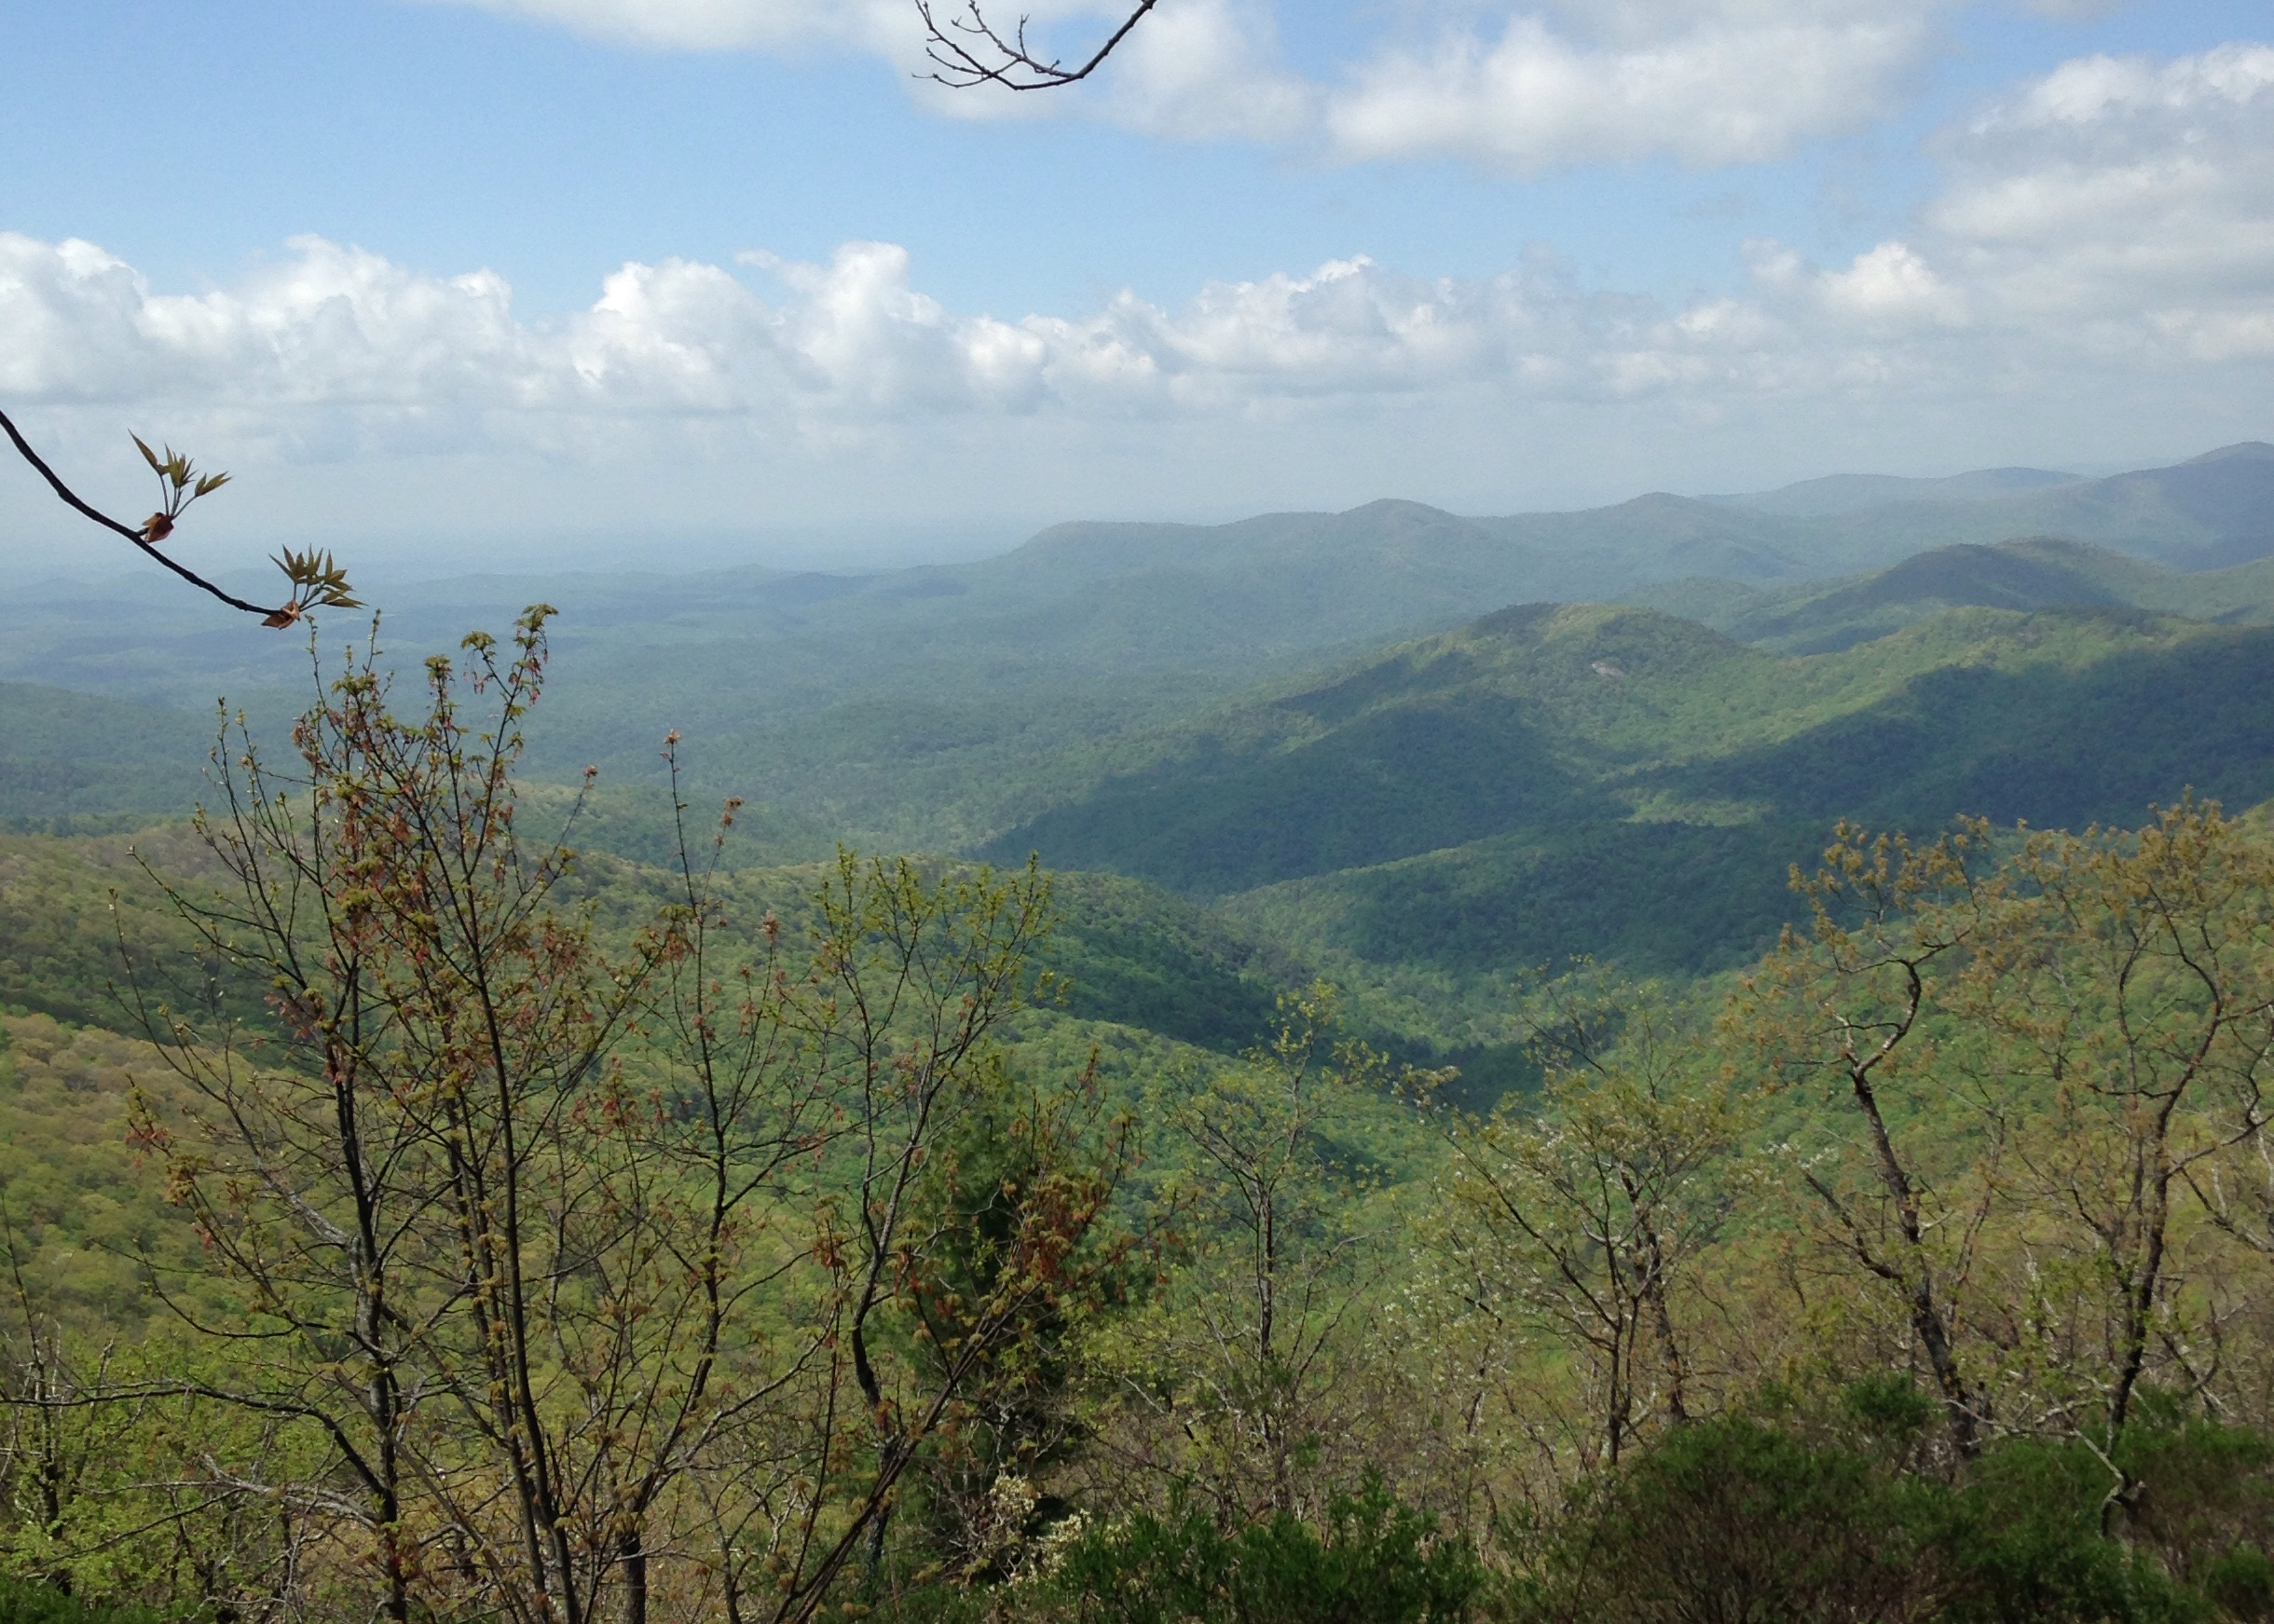 The view from the top of Wildcat Mountain.